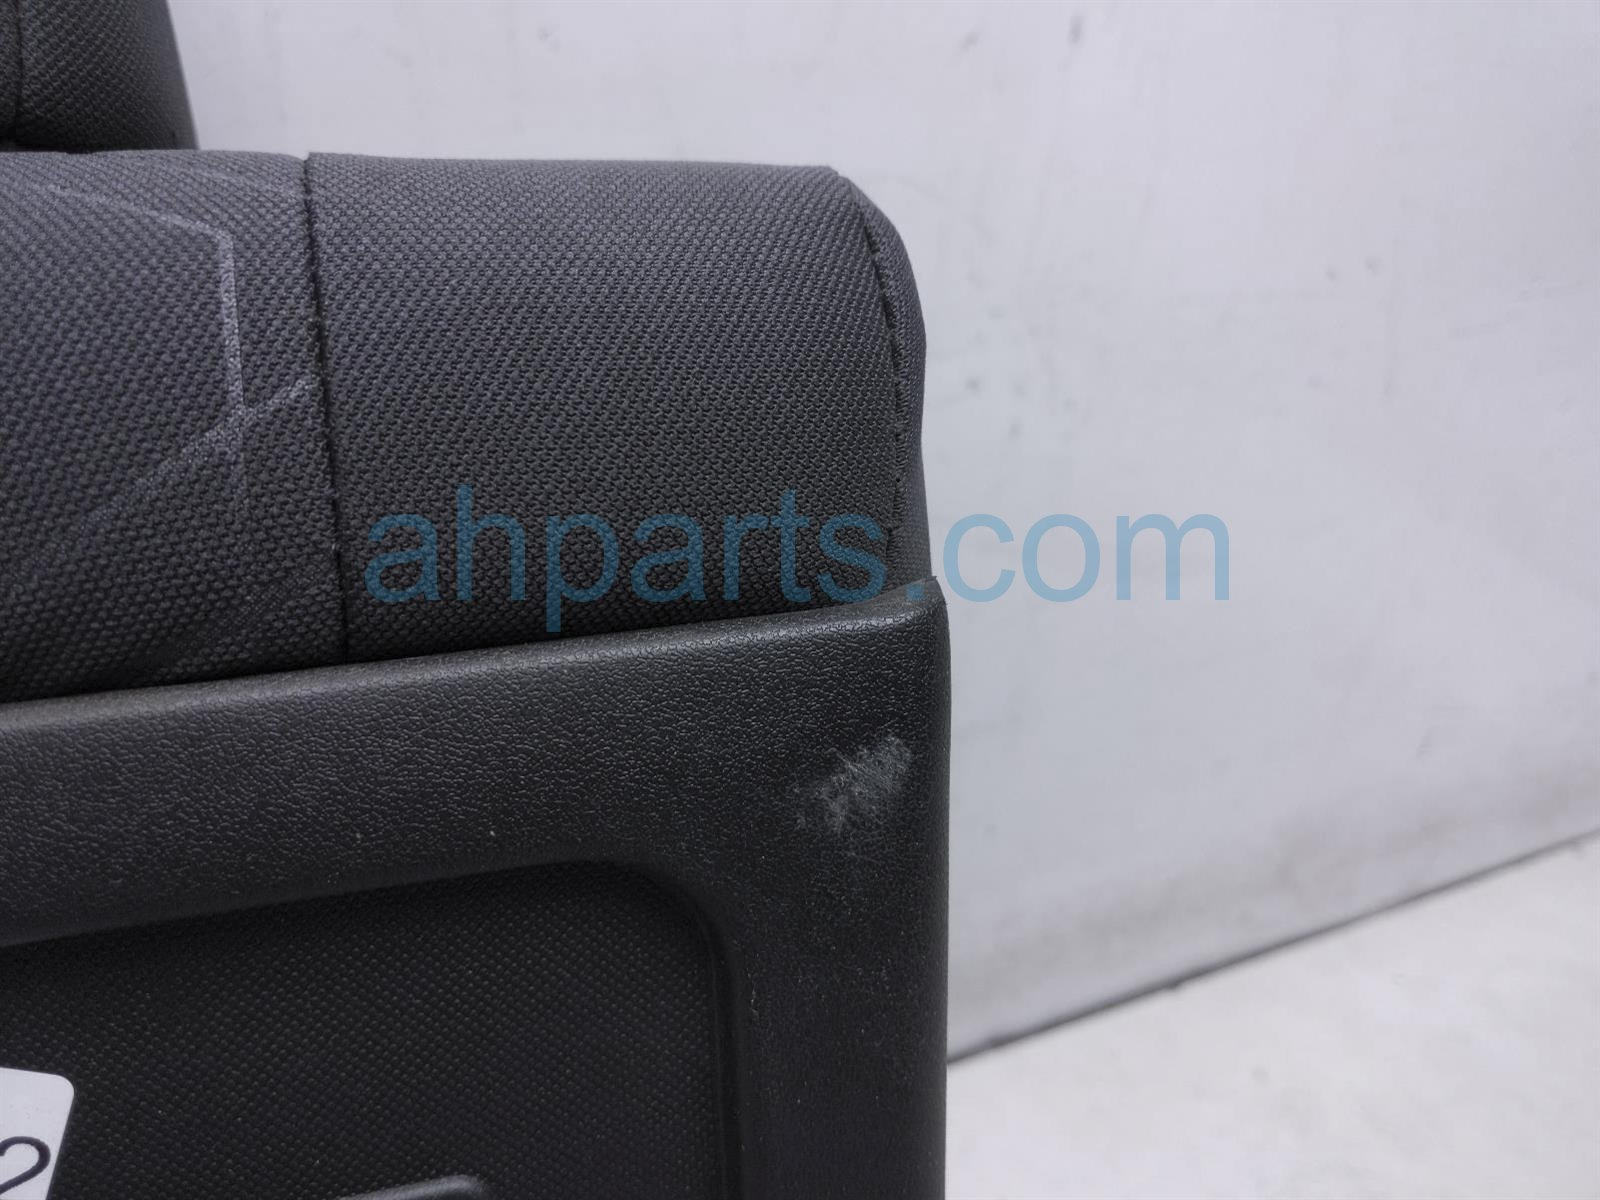 2017 Toyota Tacoma Back (2nd Row) Rear Driver Seat Upper Portion   Black 71078 04112 C6 Replacement